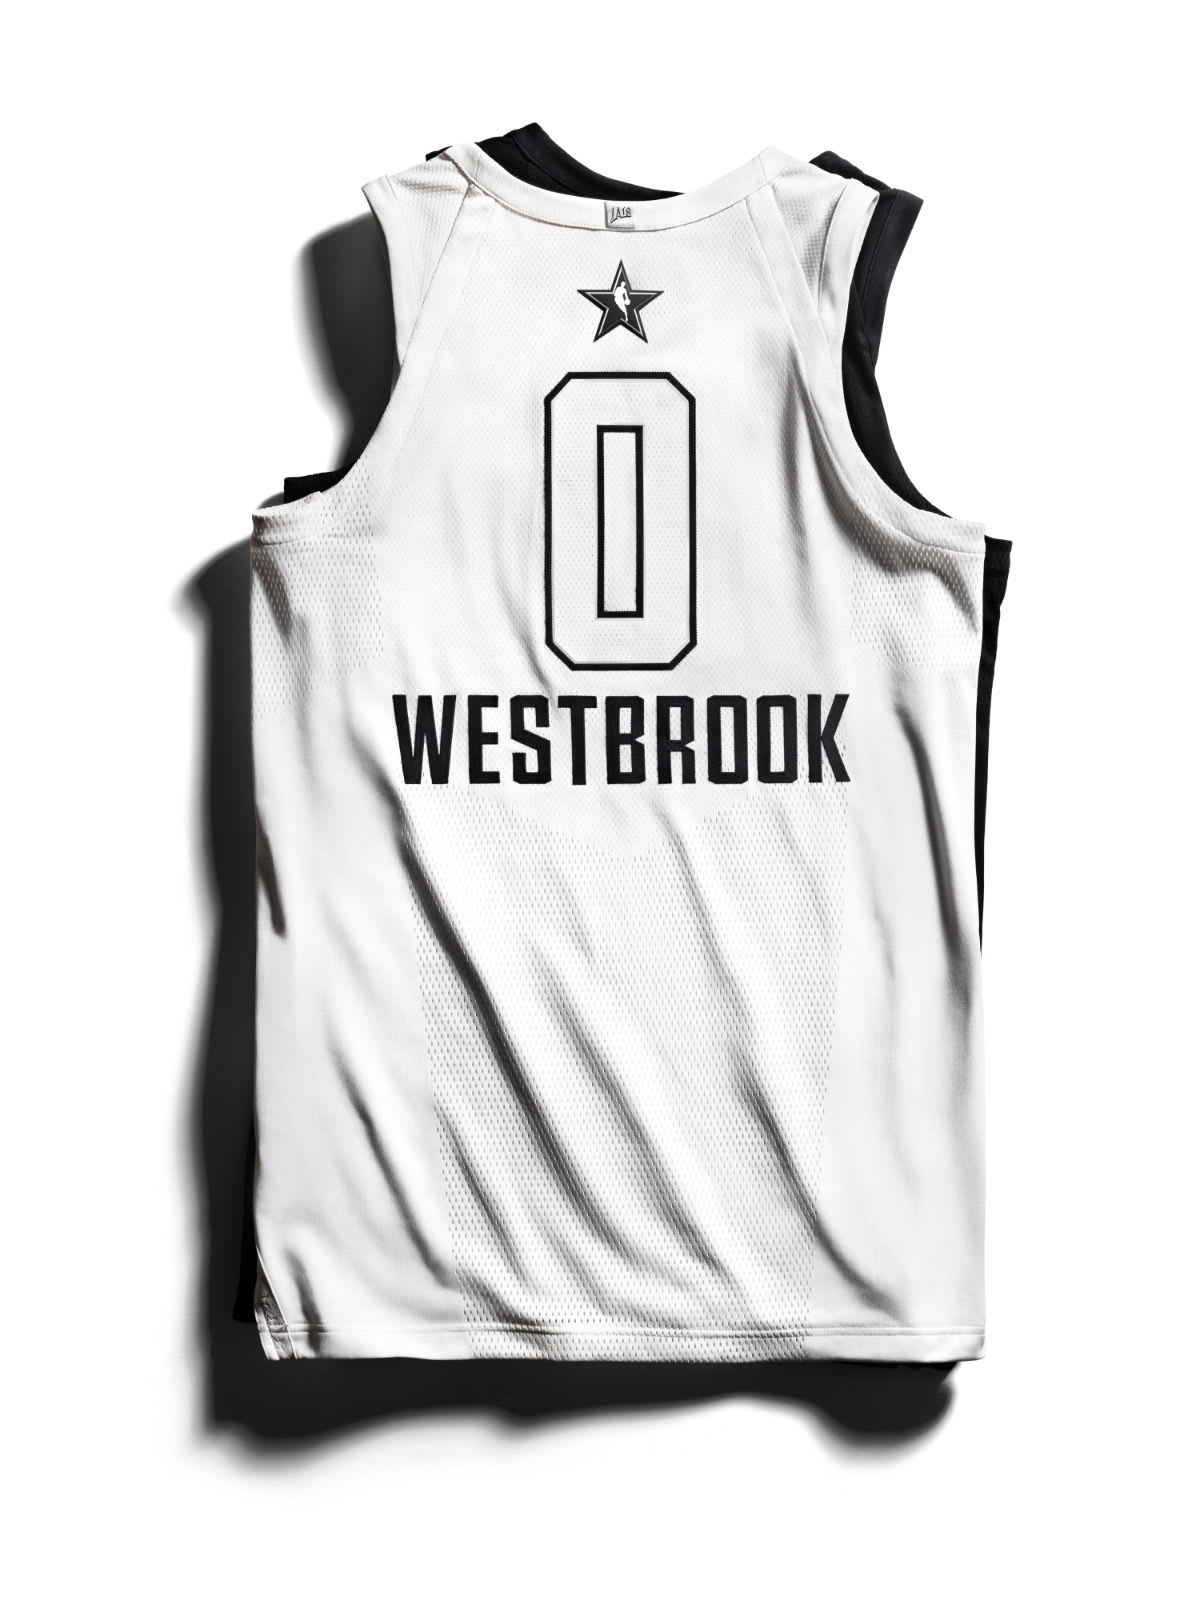 Jordan Brand 2018 NBA All-Star Jerseys Westbrook Back